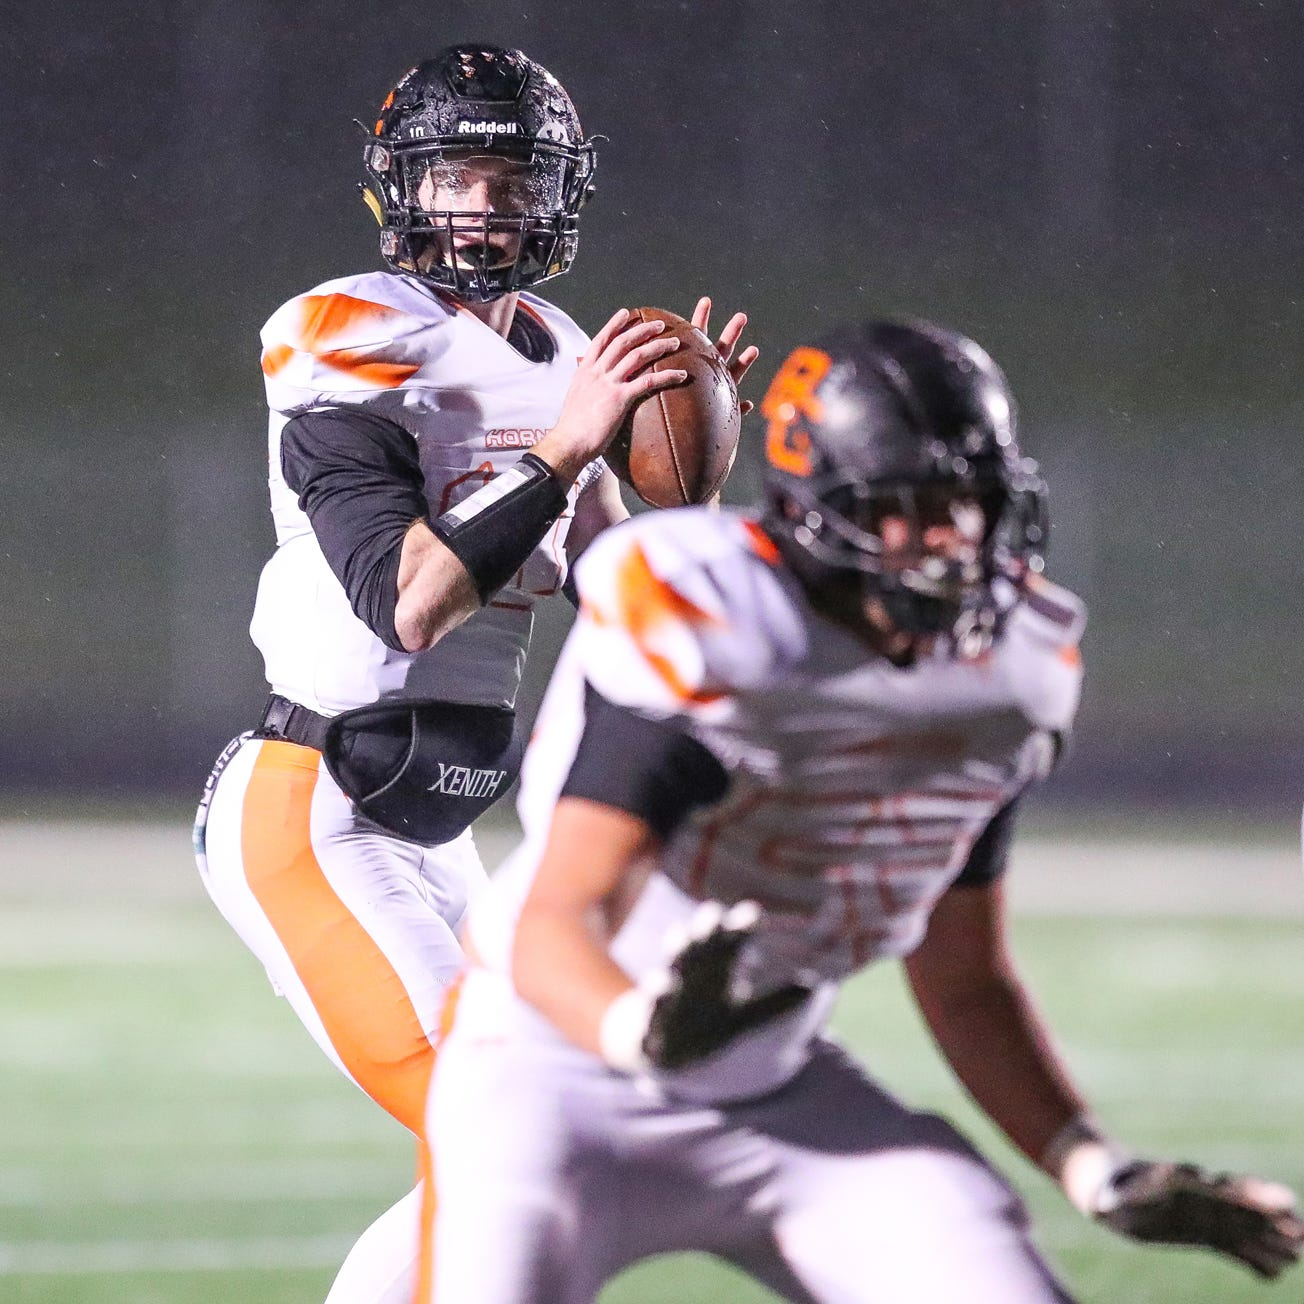 Beech Grove Hornets quarterback Jordan Reel (10) looks downfield against the Mooresville Pioneers at Mooresville High School on Friday, Oct. 19, 2018.